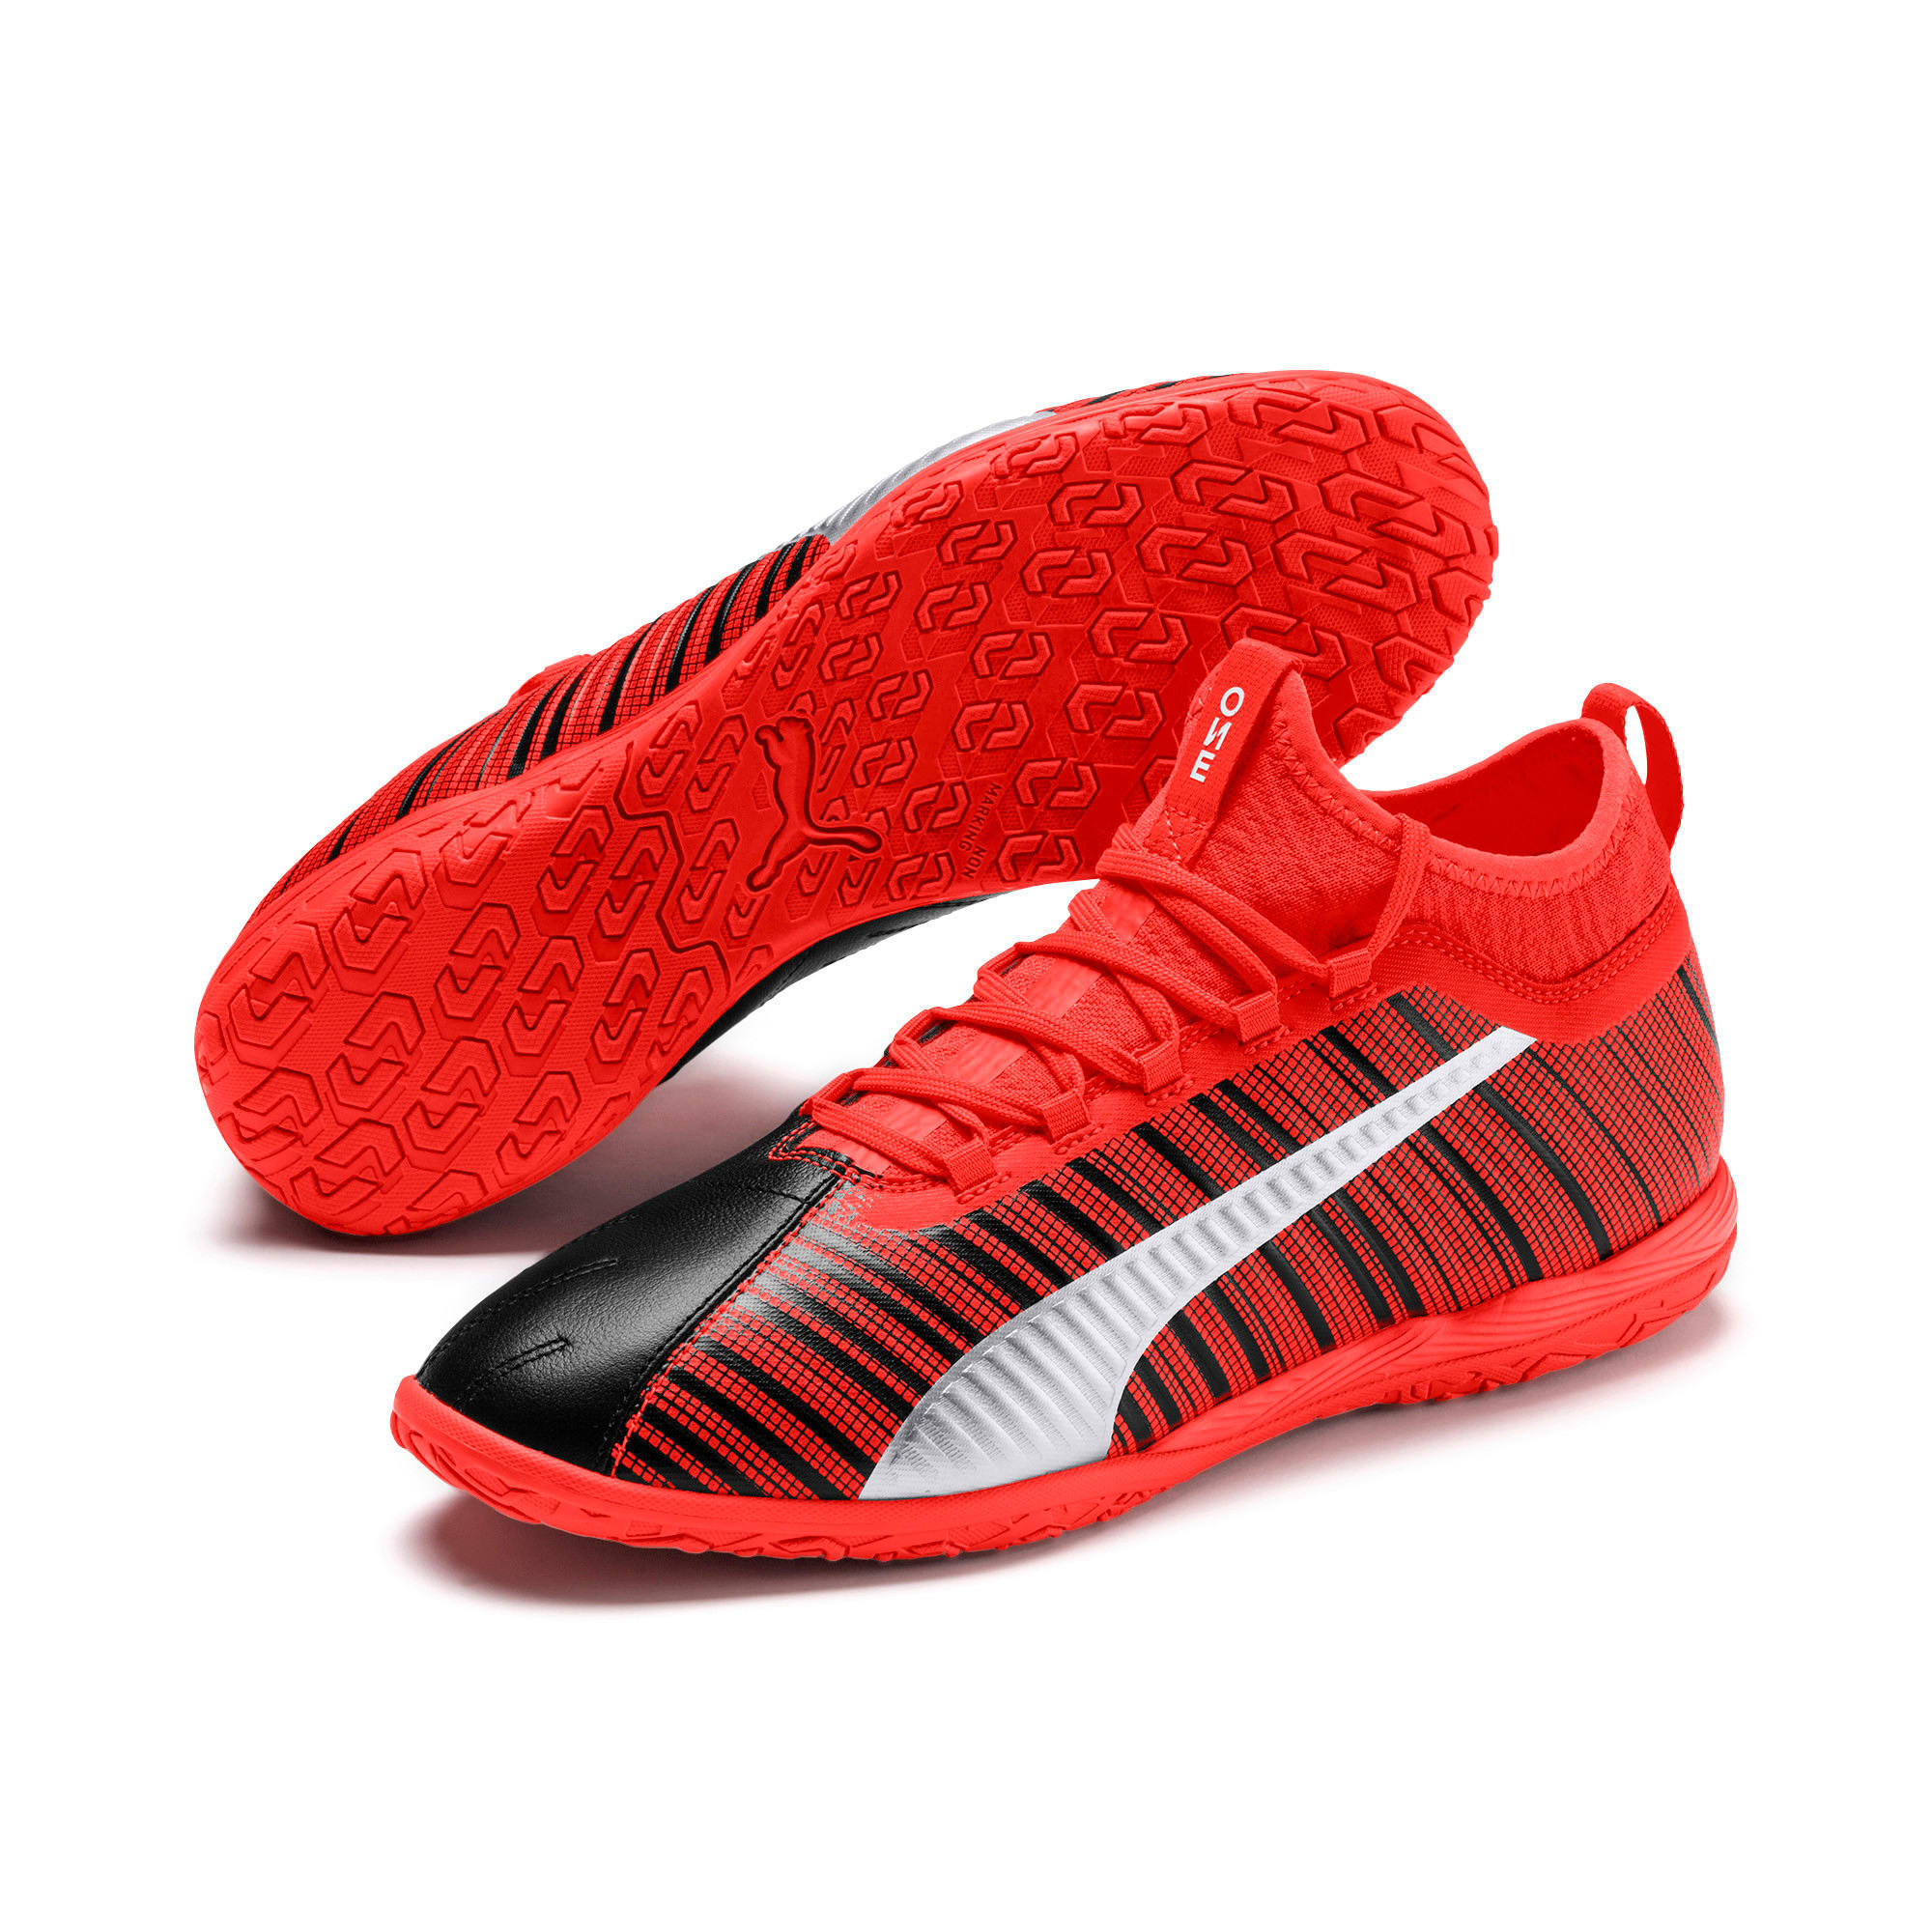 Thumbnail 3 of PUMA ONE 5.3 IT Soccer Shoes, Black-Nrgy Red-Aged Silver, medium